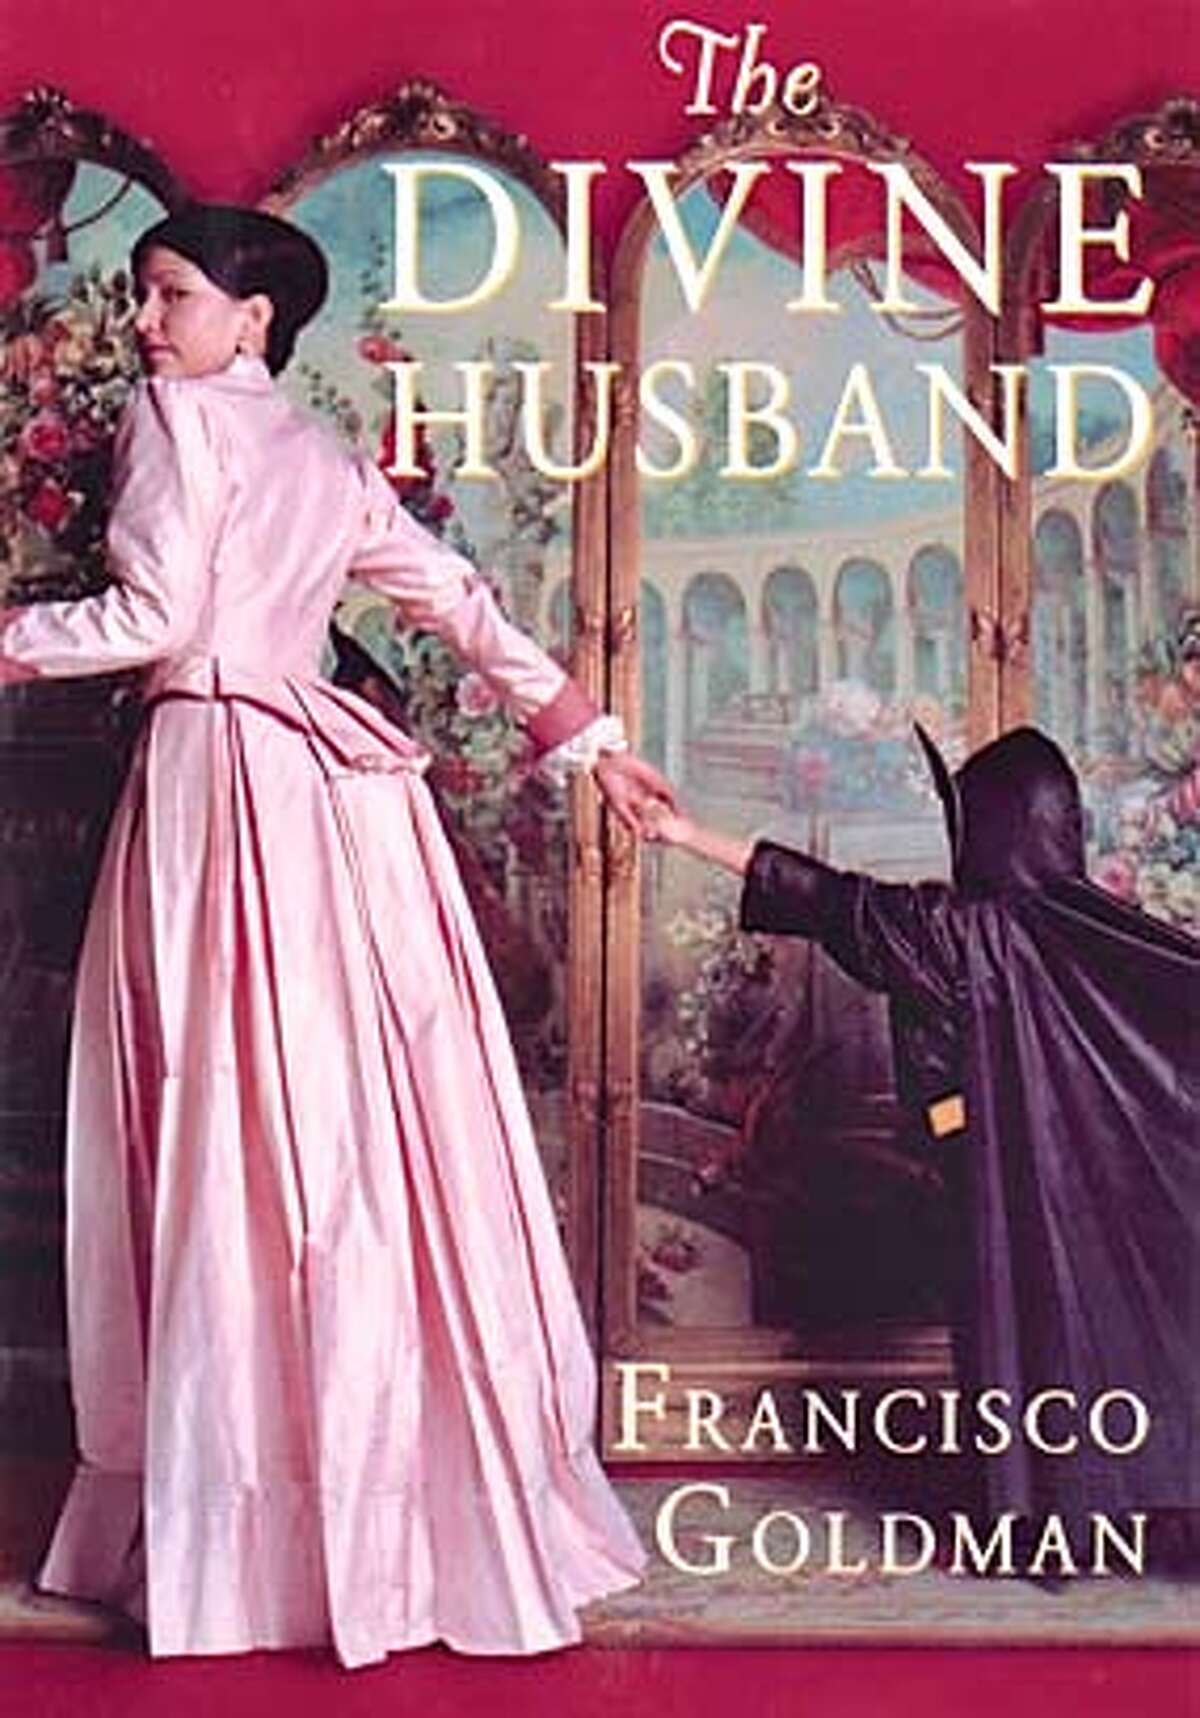 FALLBOOKS29h.JPG Book cover of THE DIVINE HUSBAND by Francisco Goldman HANDOUT Ran on: 08-29-2004 BookReview#BookReview#Chronicle#08-29-2004#ALL#Advance#M3#0422292527 Datebook#Datebook#Chronicle#12/7/2004#ALL#Advance##0422292527